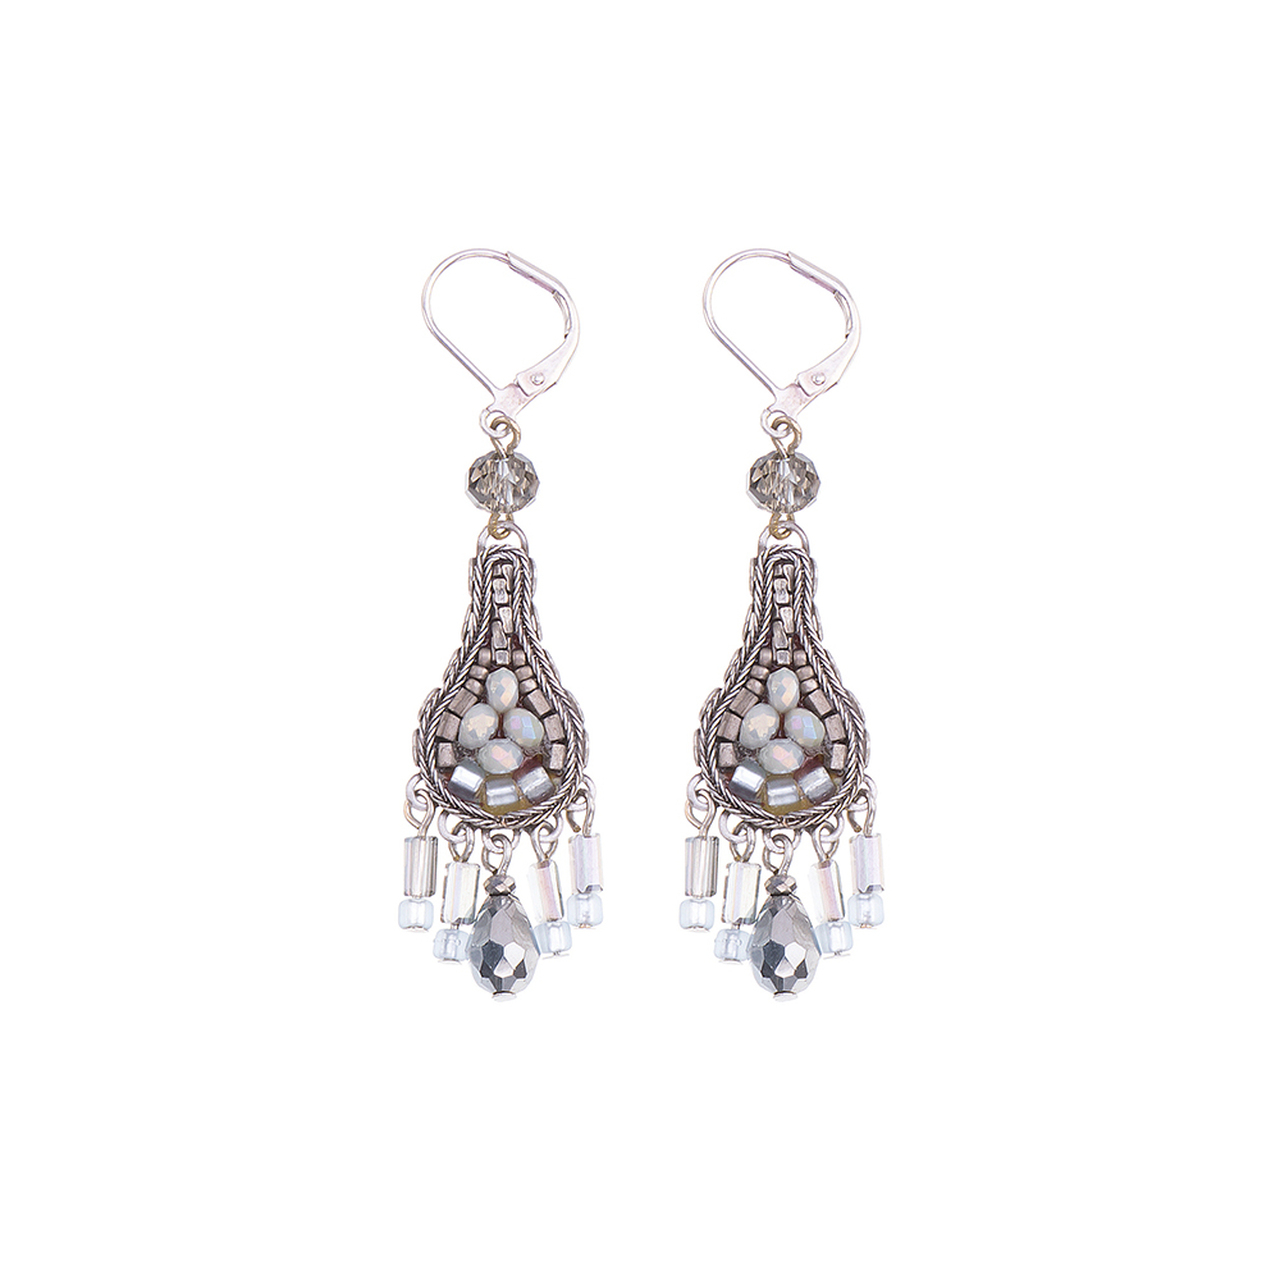 Silver Odyssey - French Wire Earrings